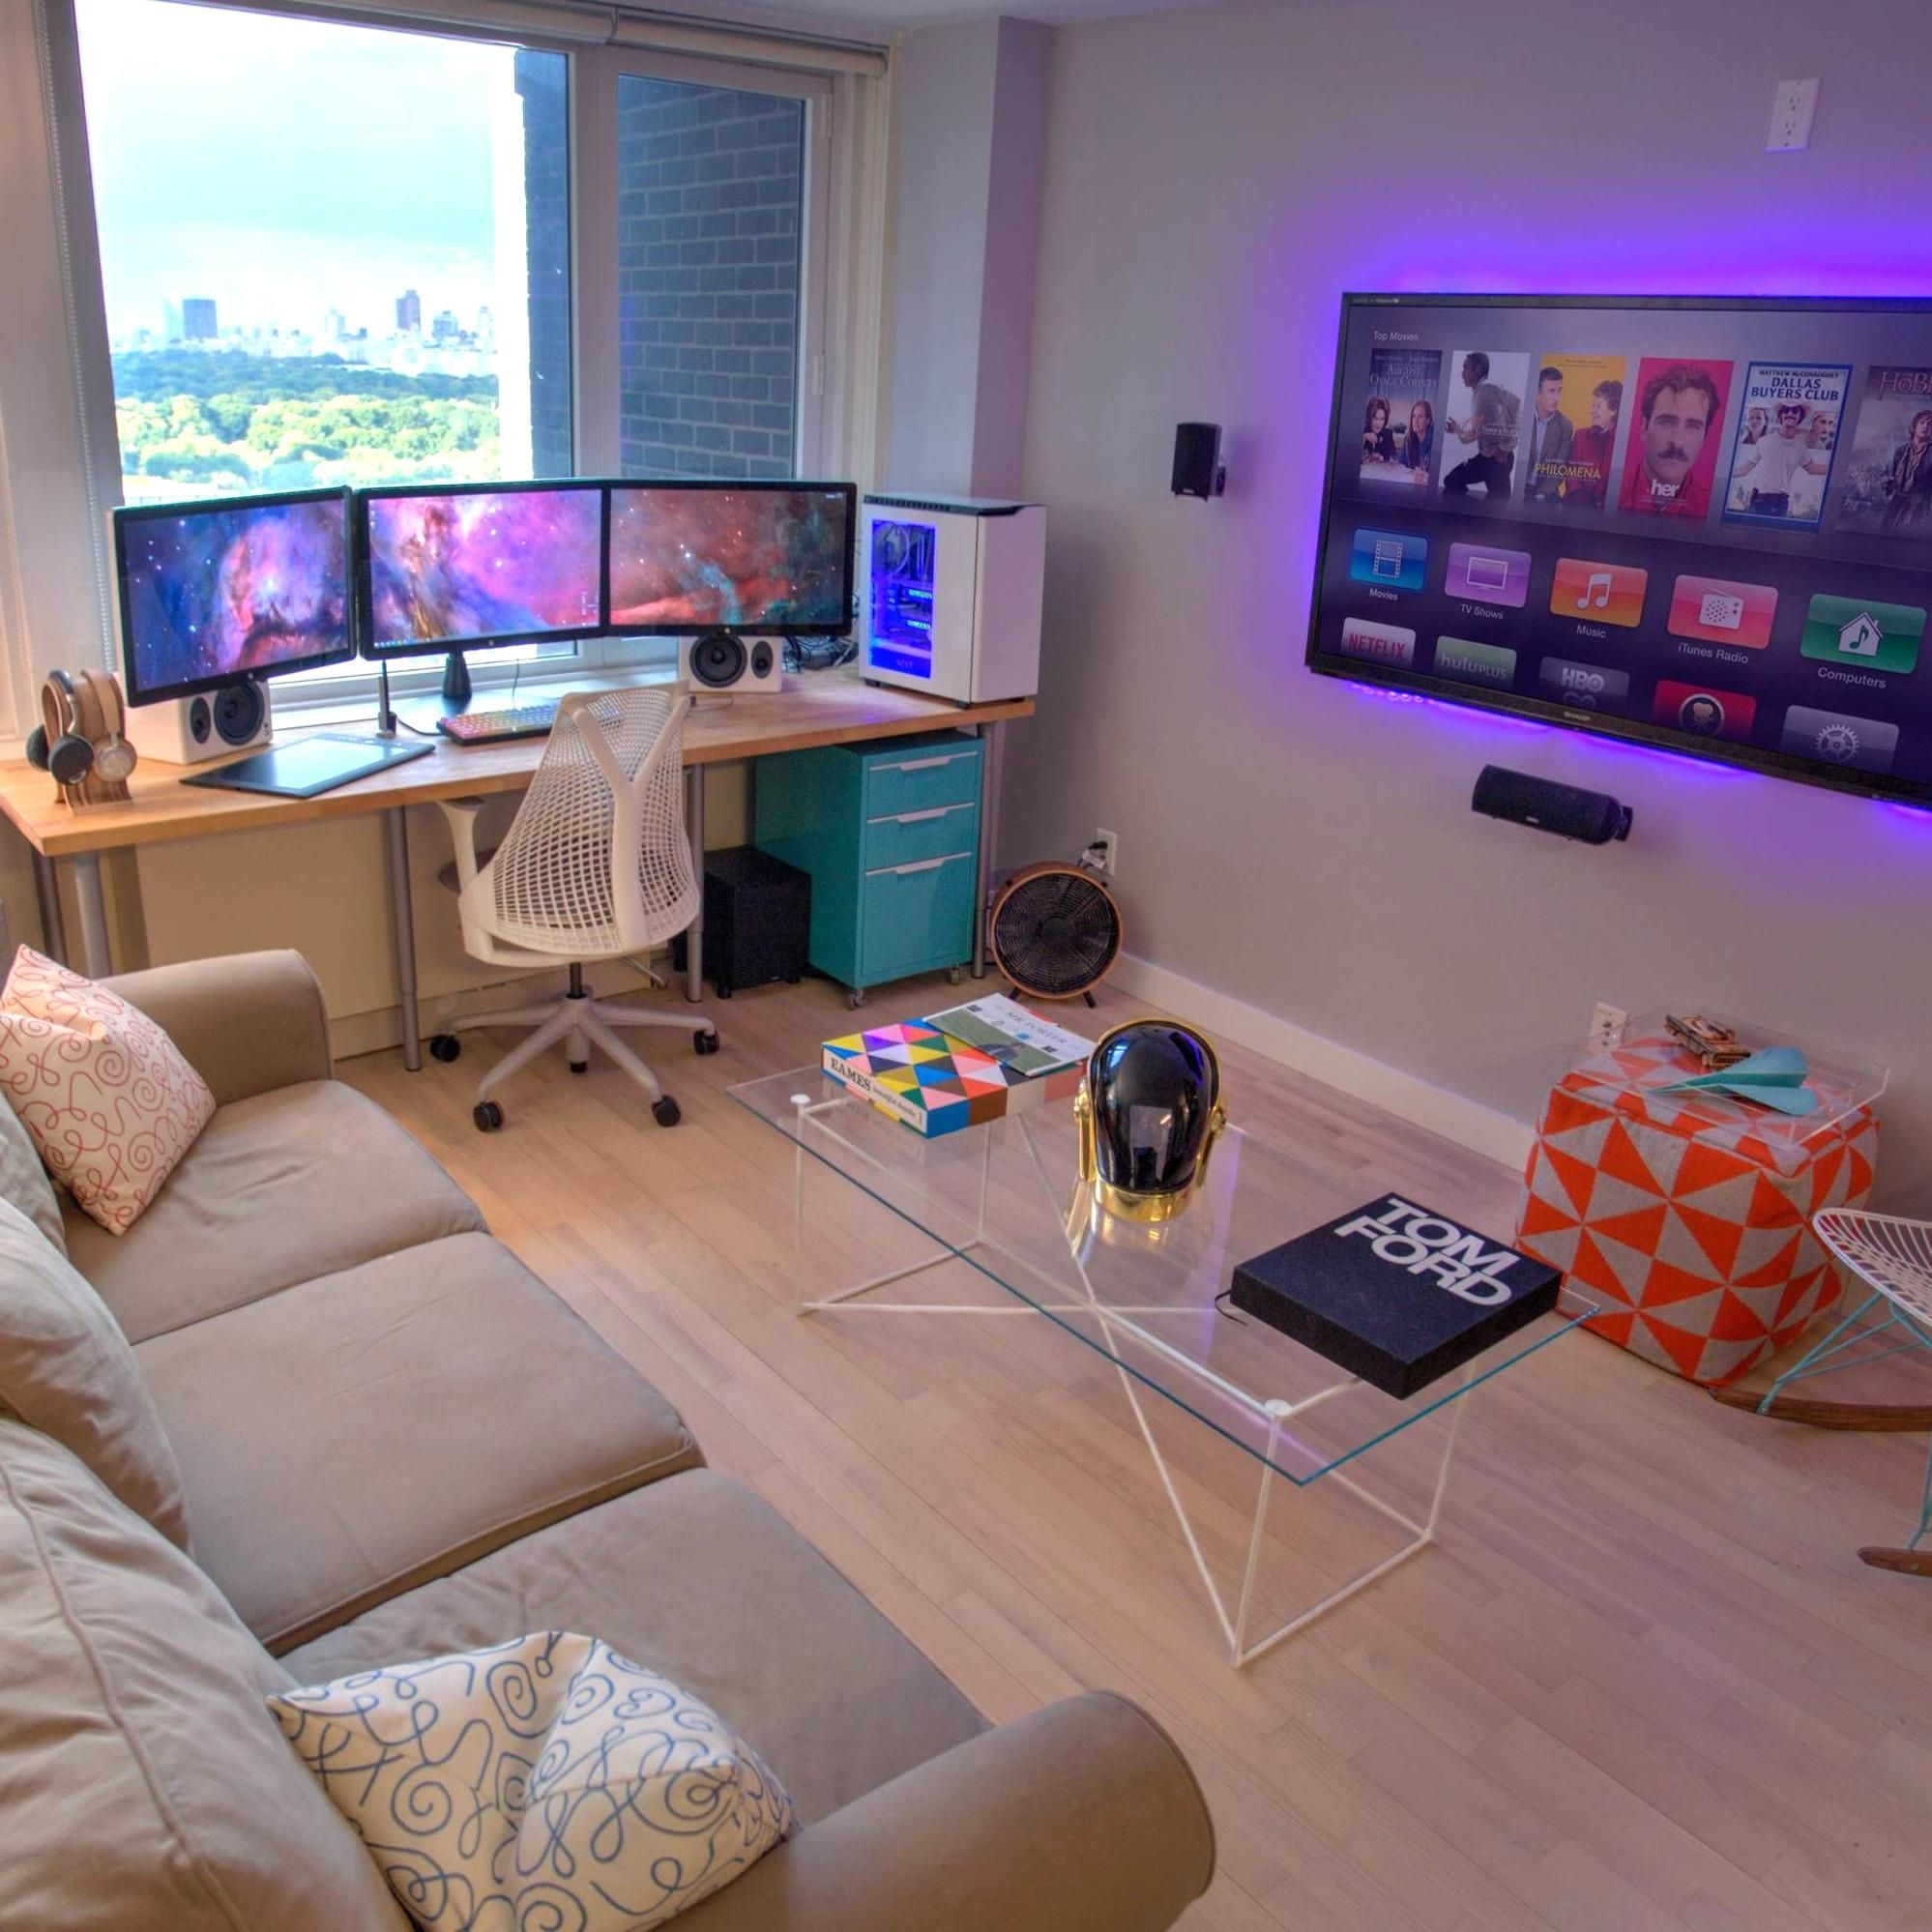 Pin On Quality Pins Games Room Inspiration Game Room Small Room Design Living room gaming pc